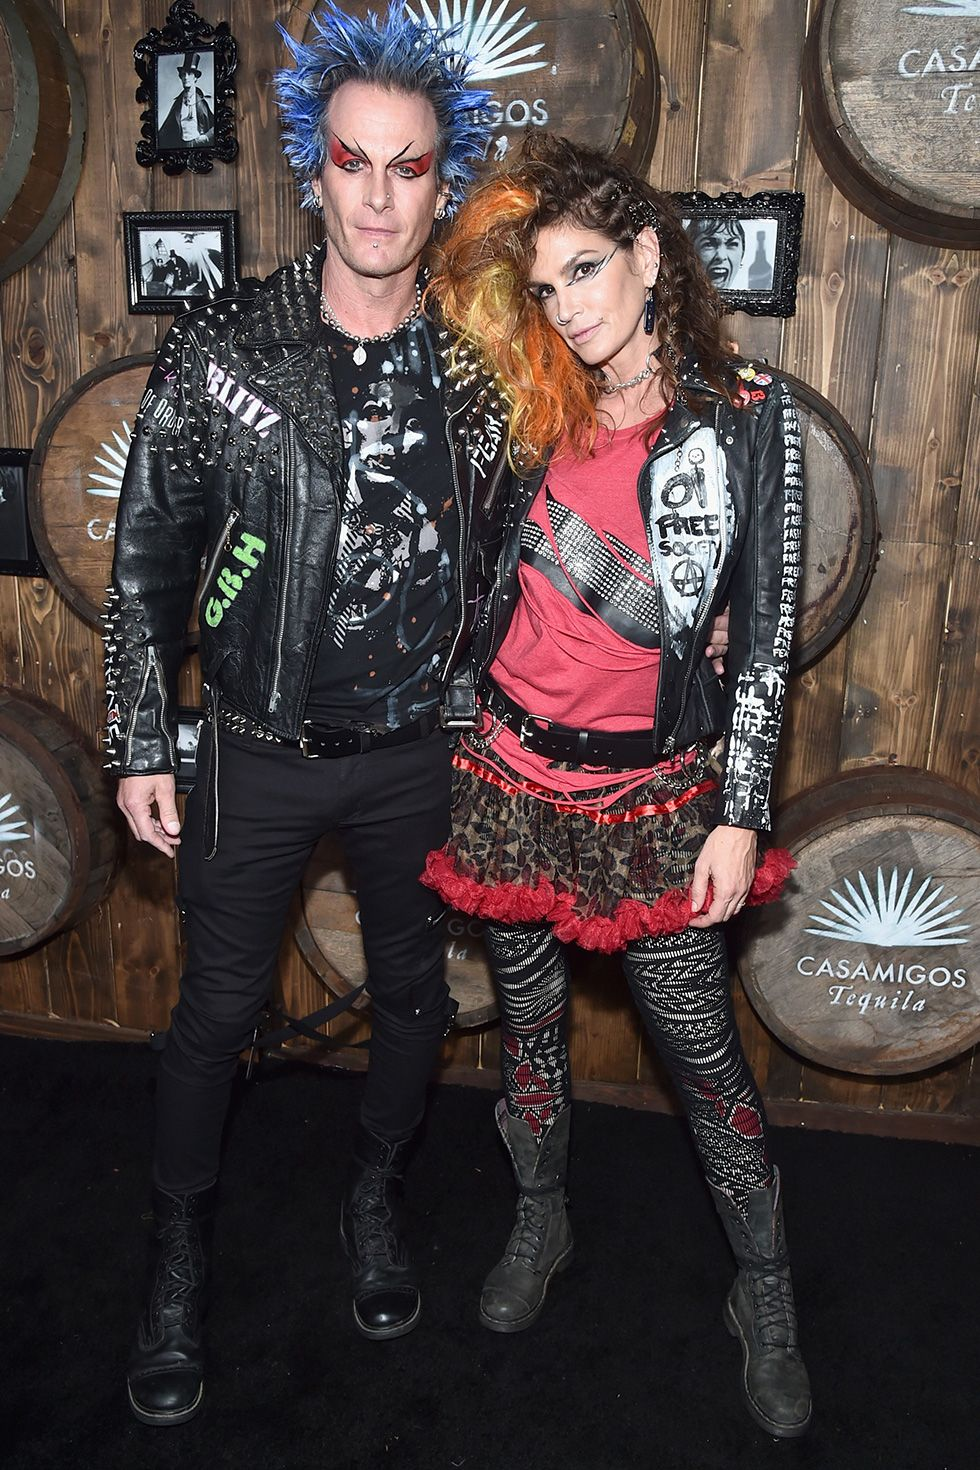 Cindy Crawford and Rande Gerber - Punk Rockers Model Cindy Crawford and Casamigos cofounder Rande Gerber dressed up as hard-core punk rockers to attend the 2016 Casamigos Halloween party in Beverly Hills, California.